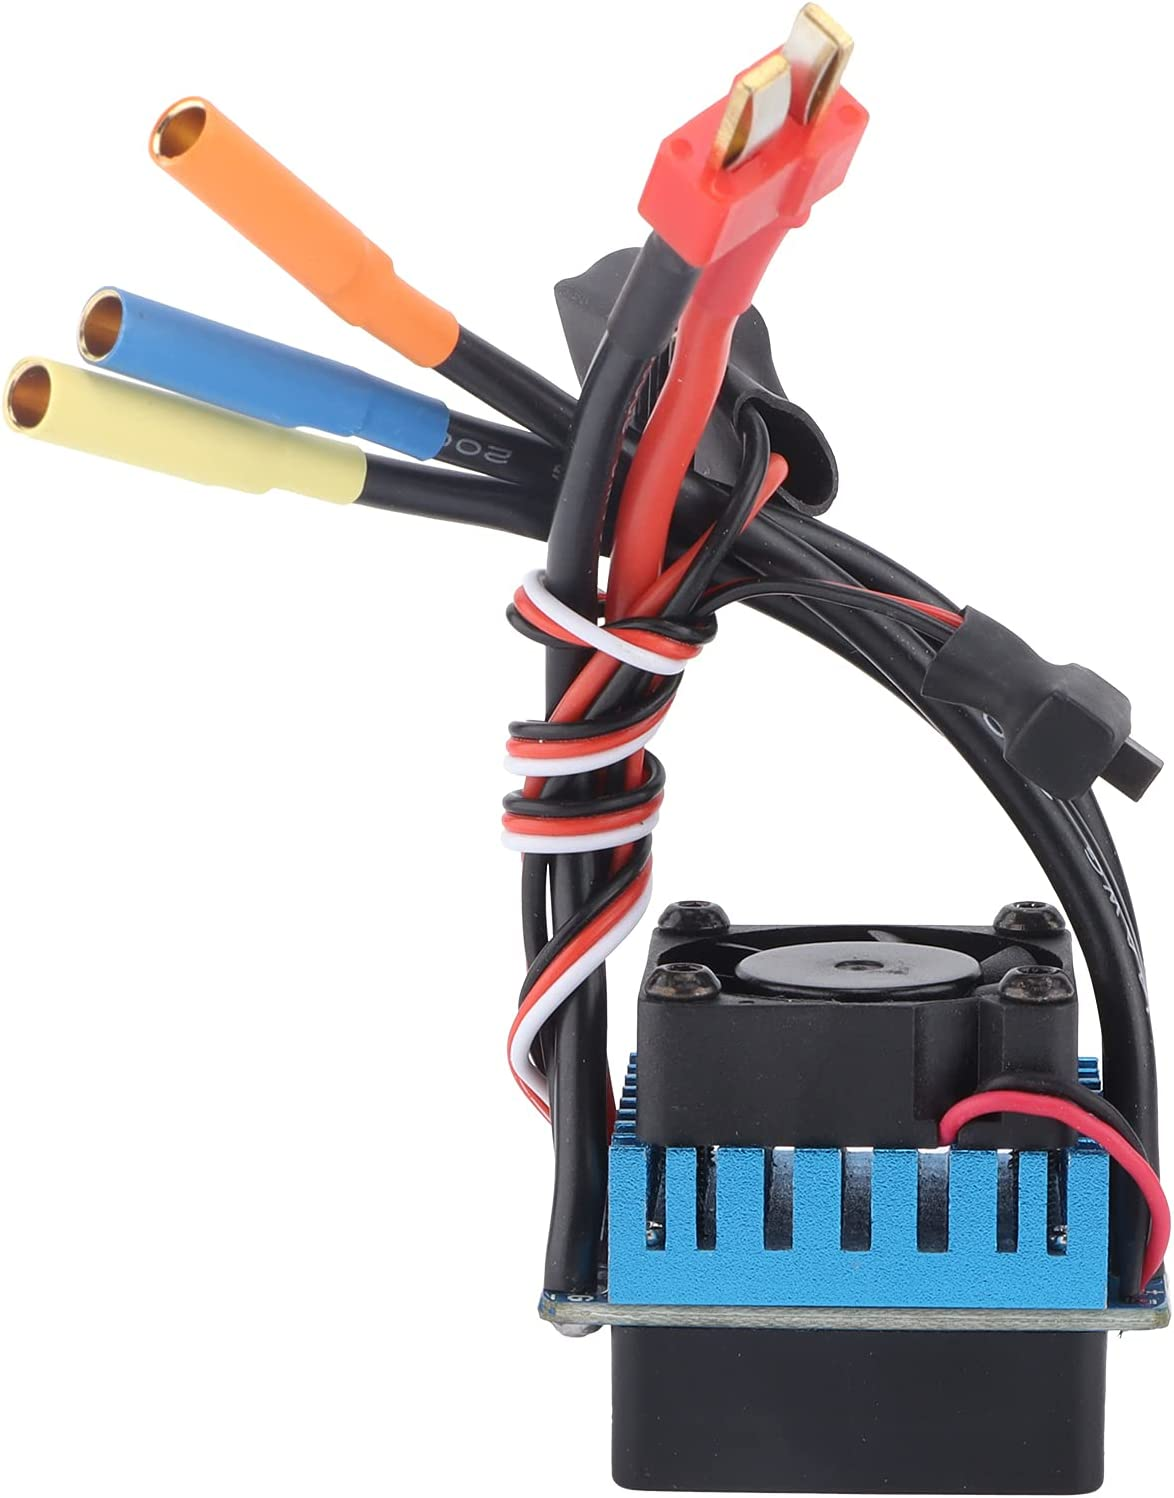 VGEBY 60A Brushless Senseless ESC Speed Super Special SALE Courier shipping free shipping held Watertight Controller fo